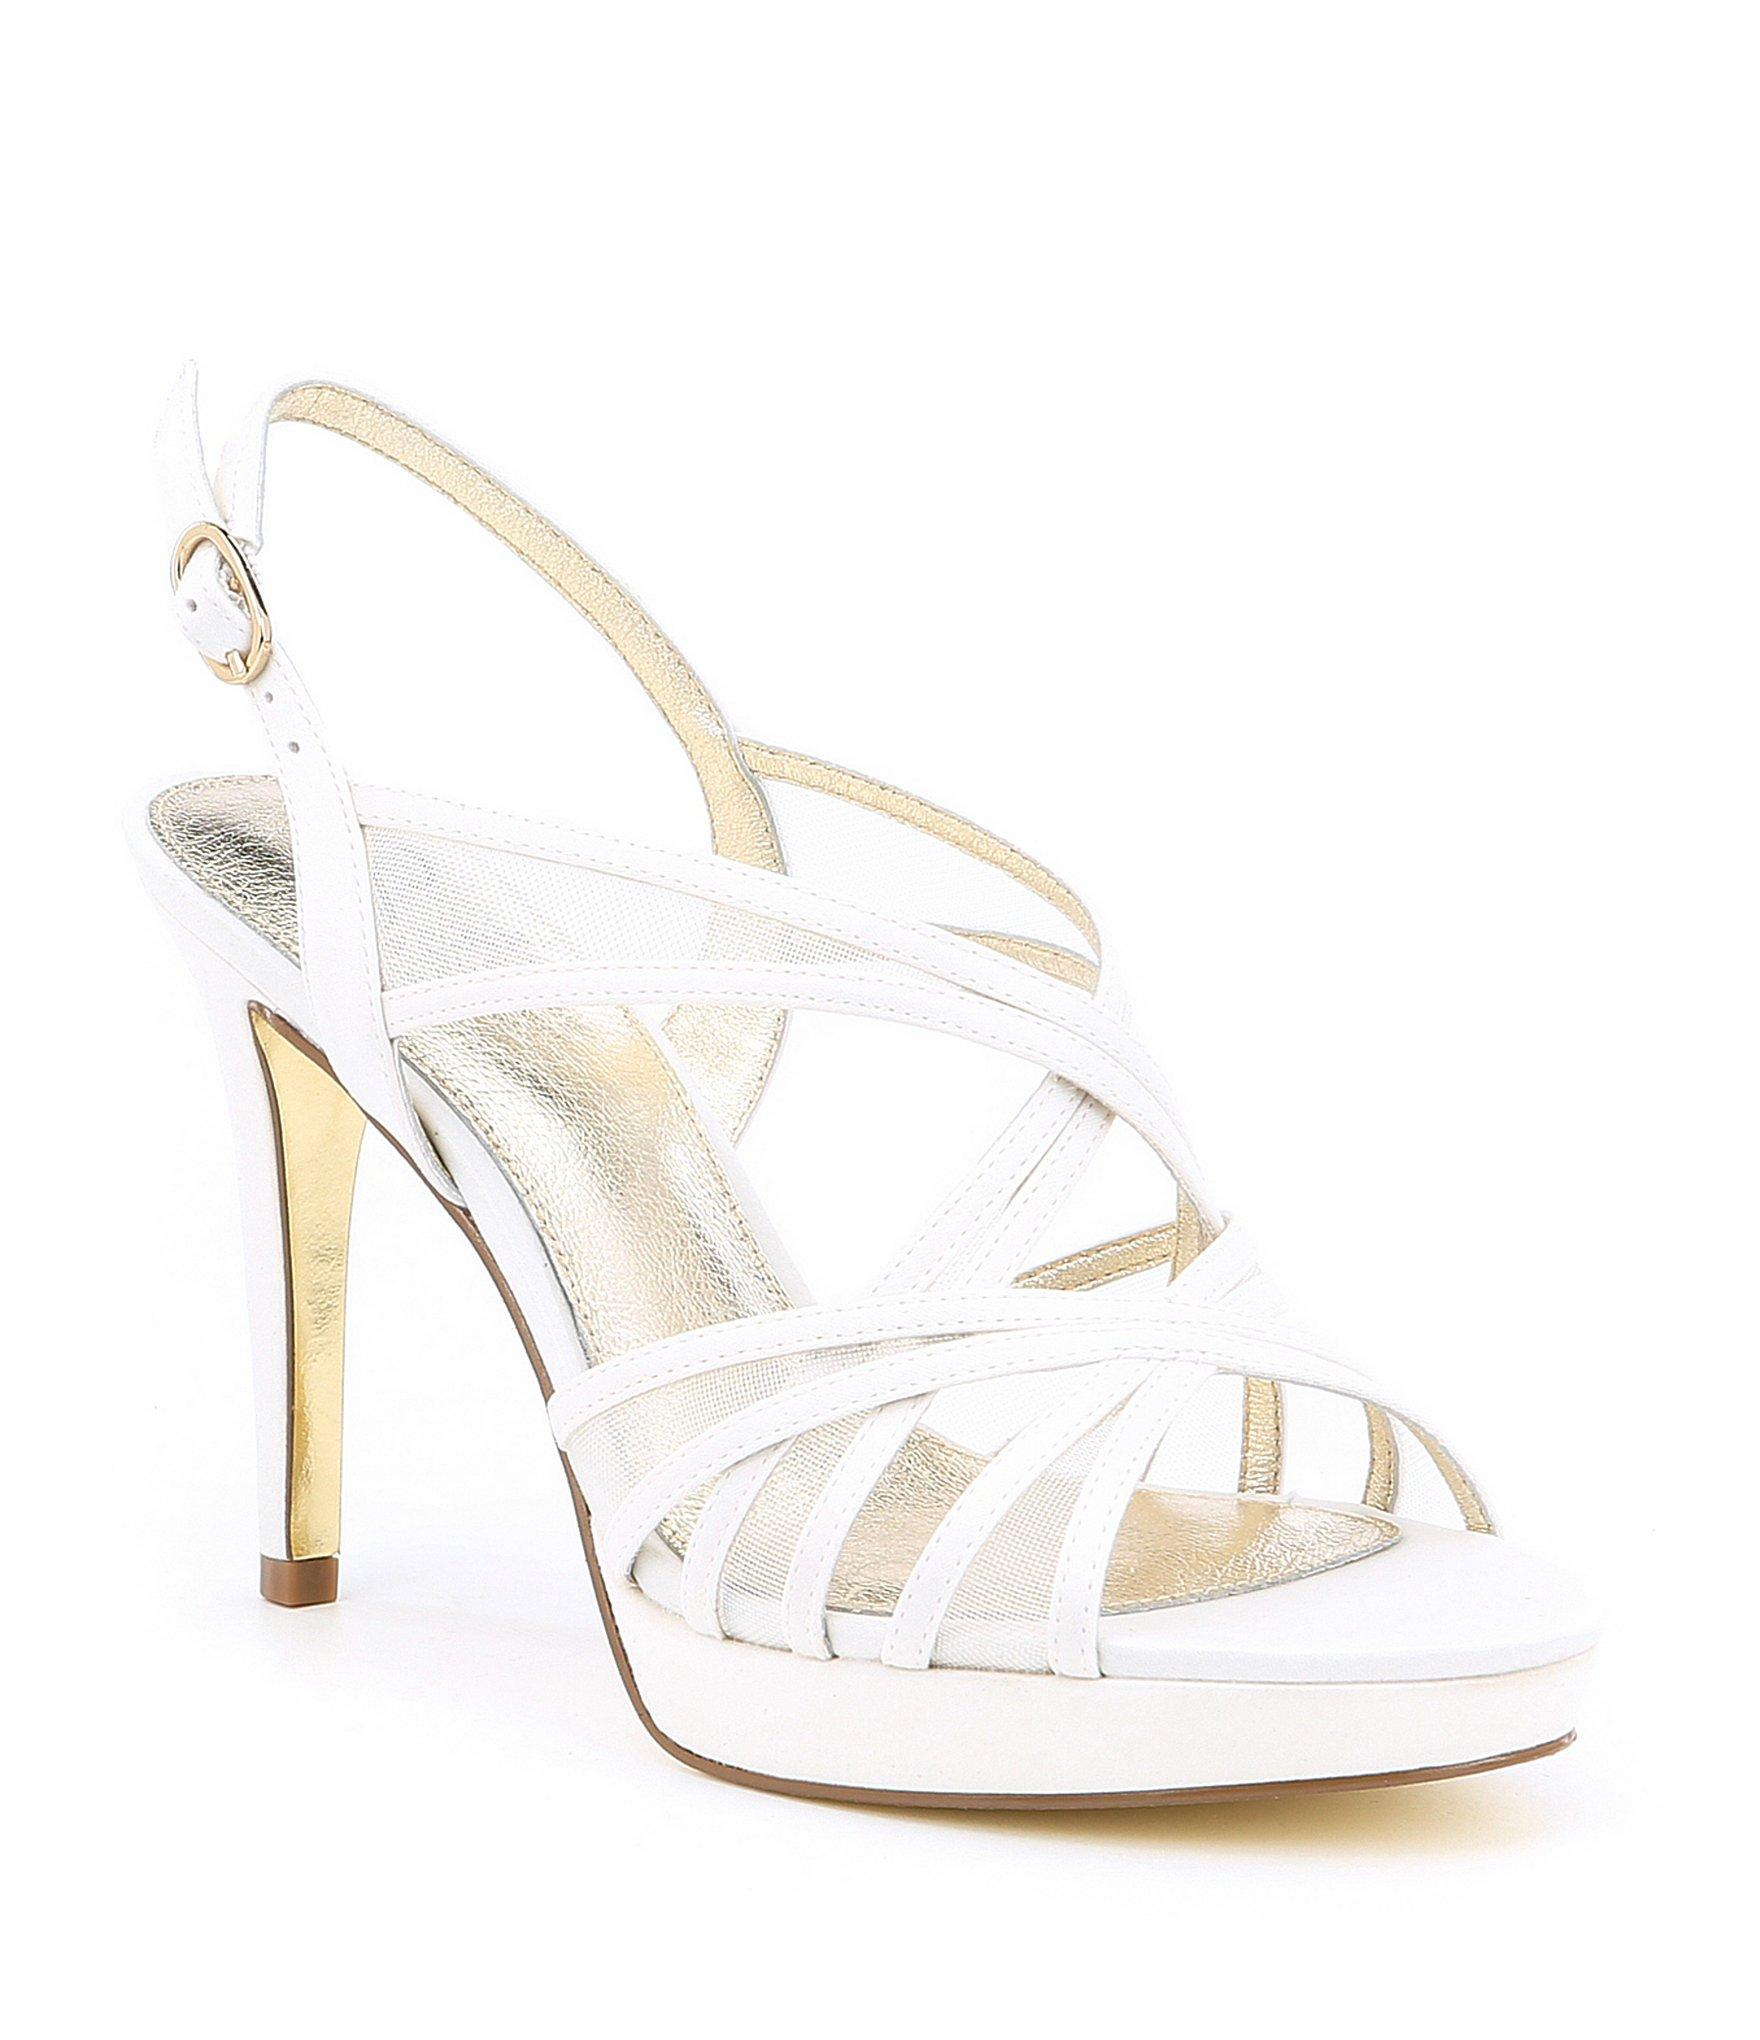 af17315a1aa Lyst - Adrianna Papell Adri Satin And Mesh Strappy Dress Sandals in ...